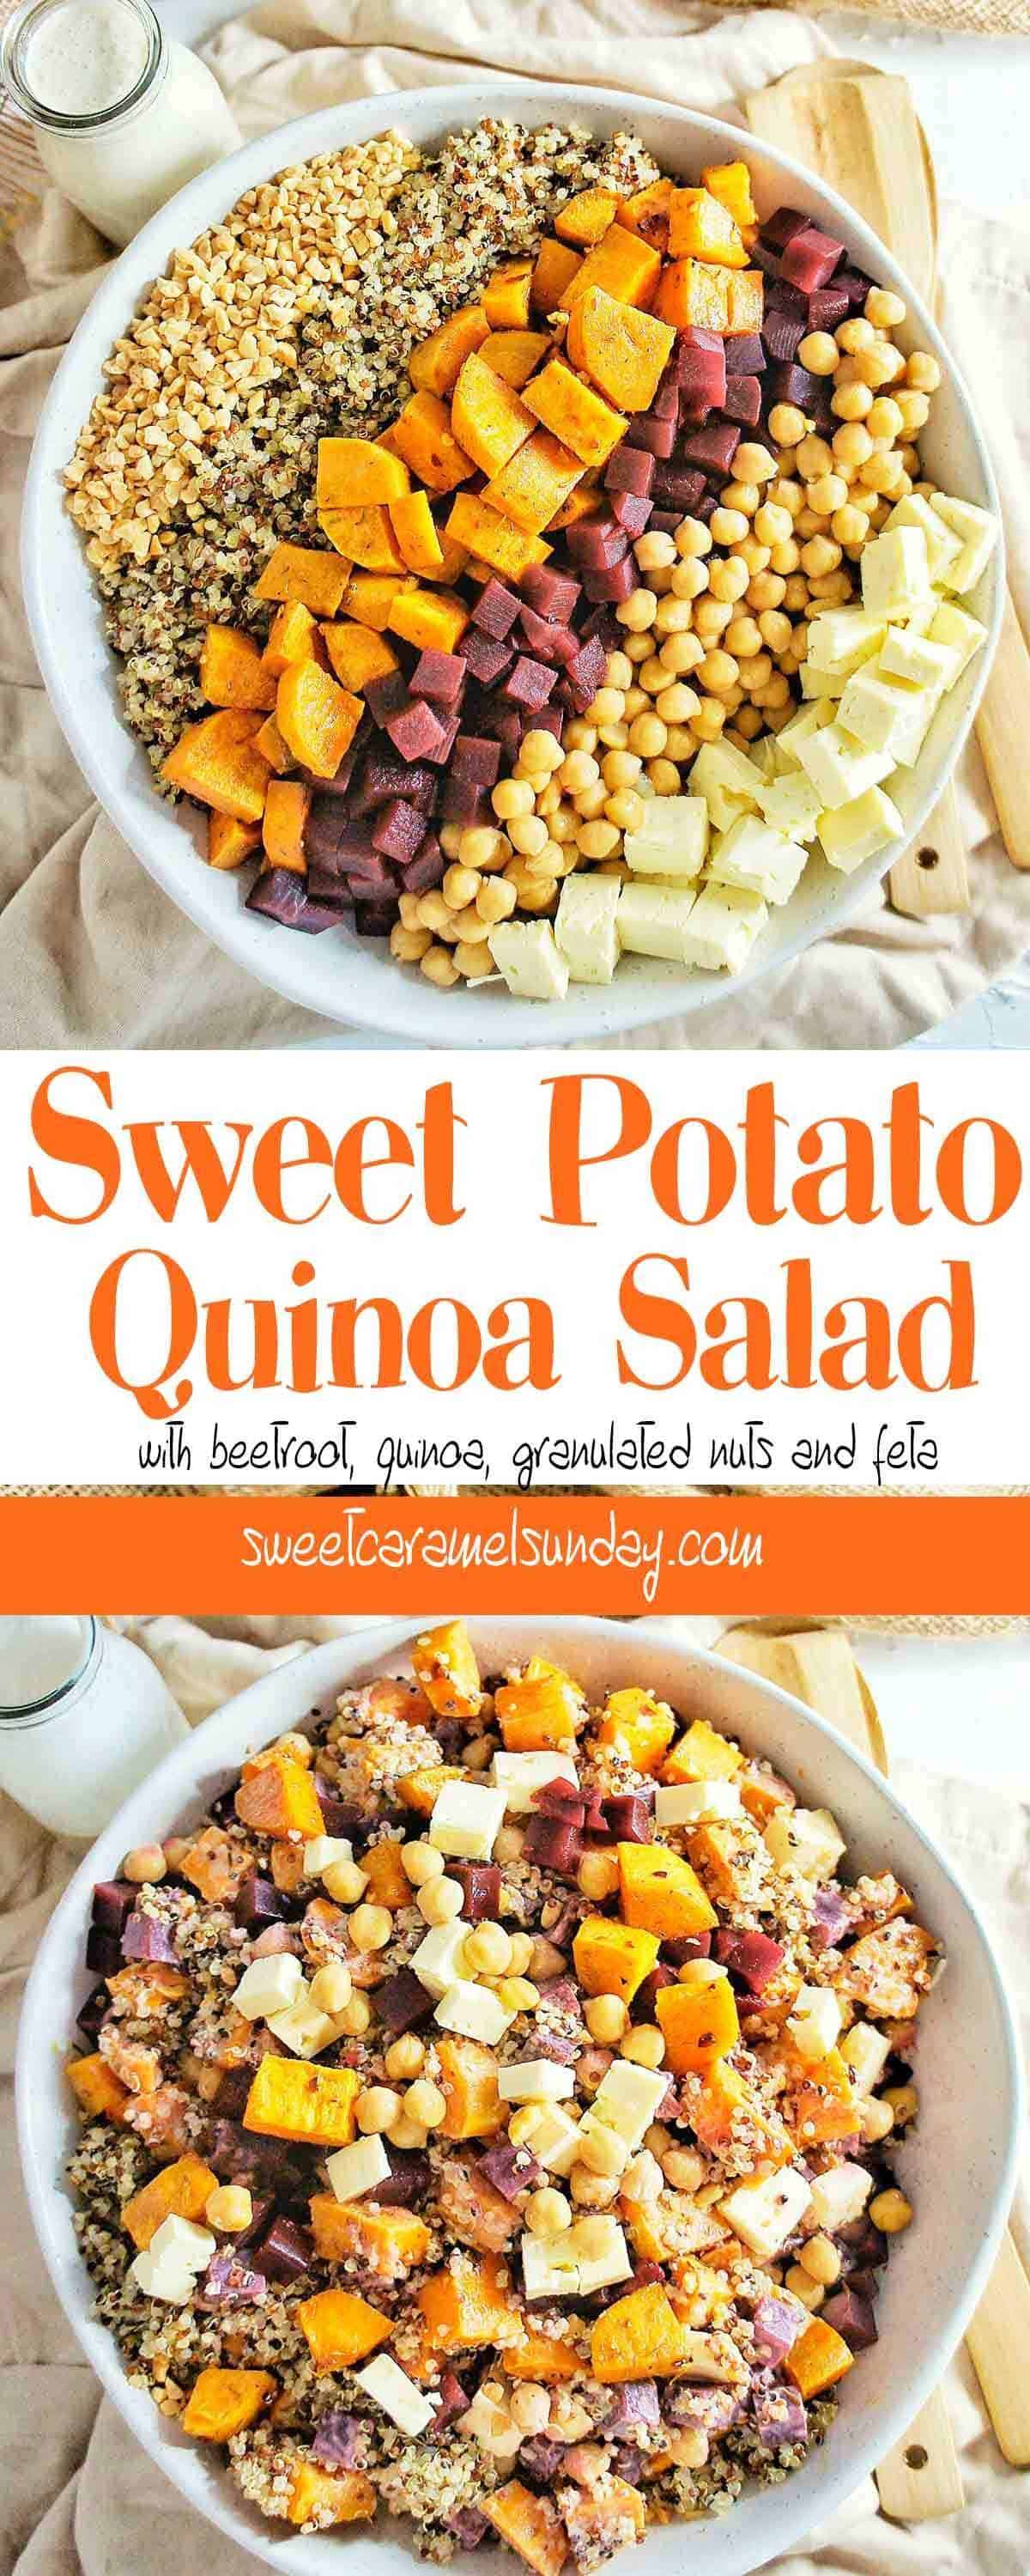 Sweet Potato Quinoa Salad in a white bowl with text overlay